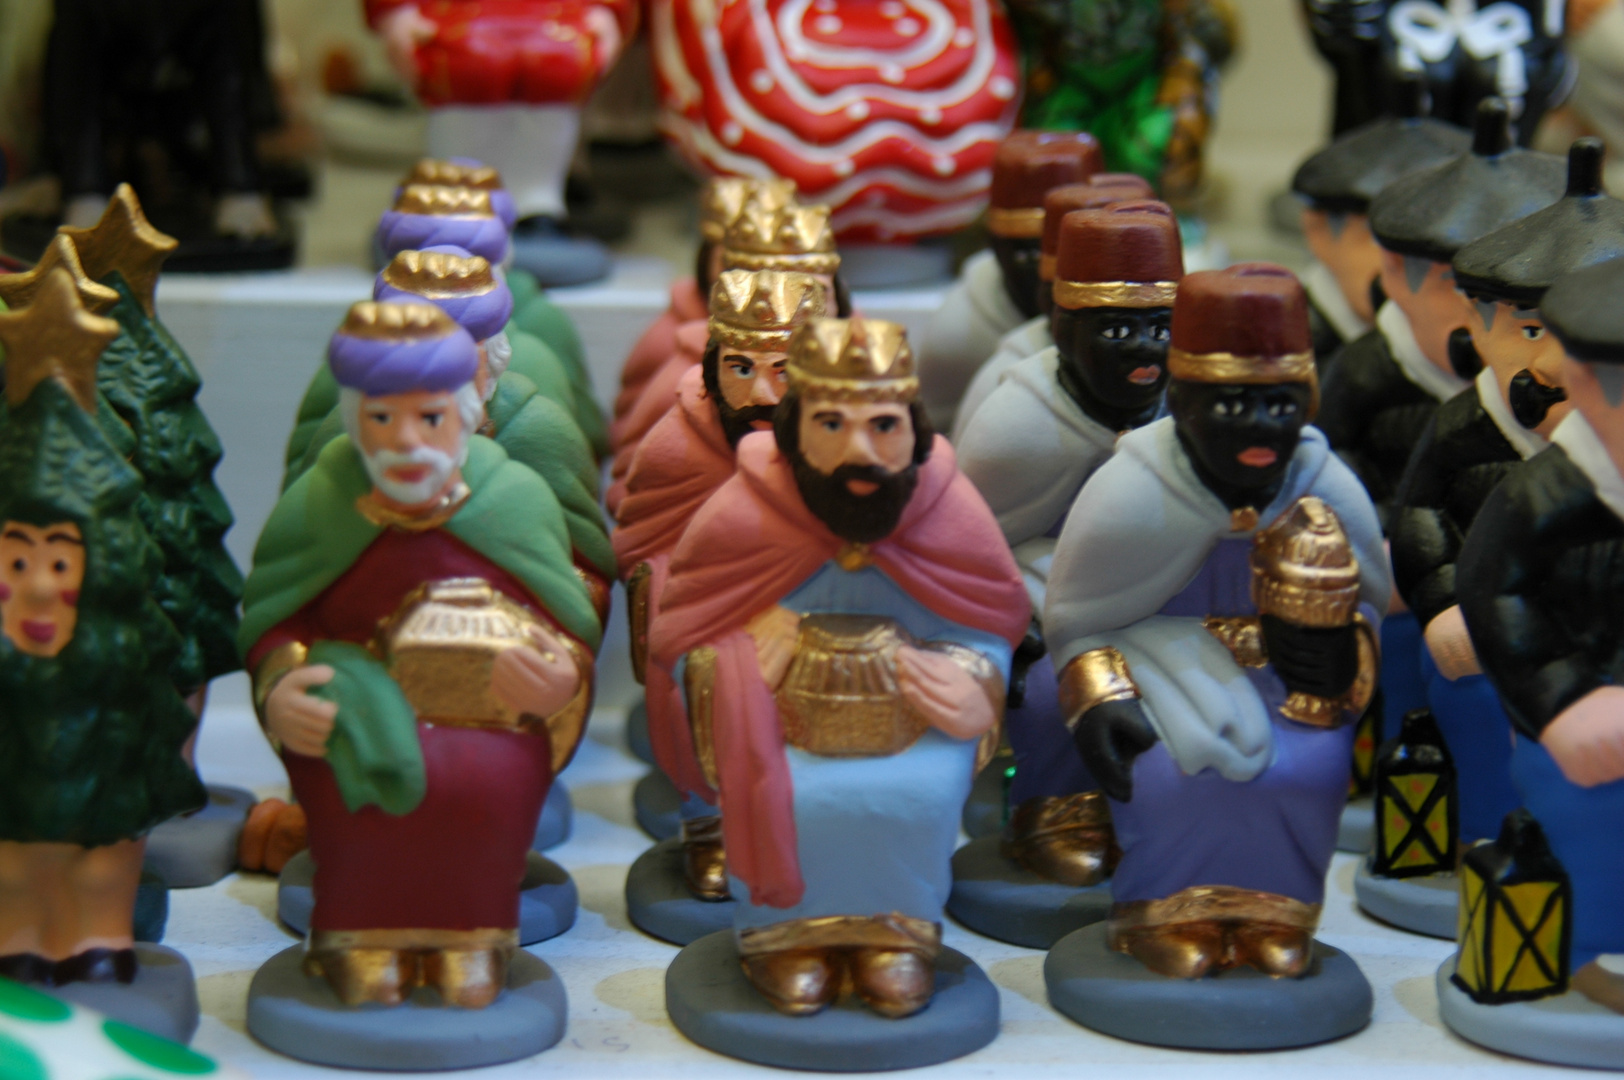 Caganers reials.